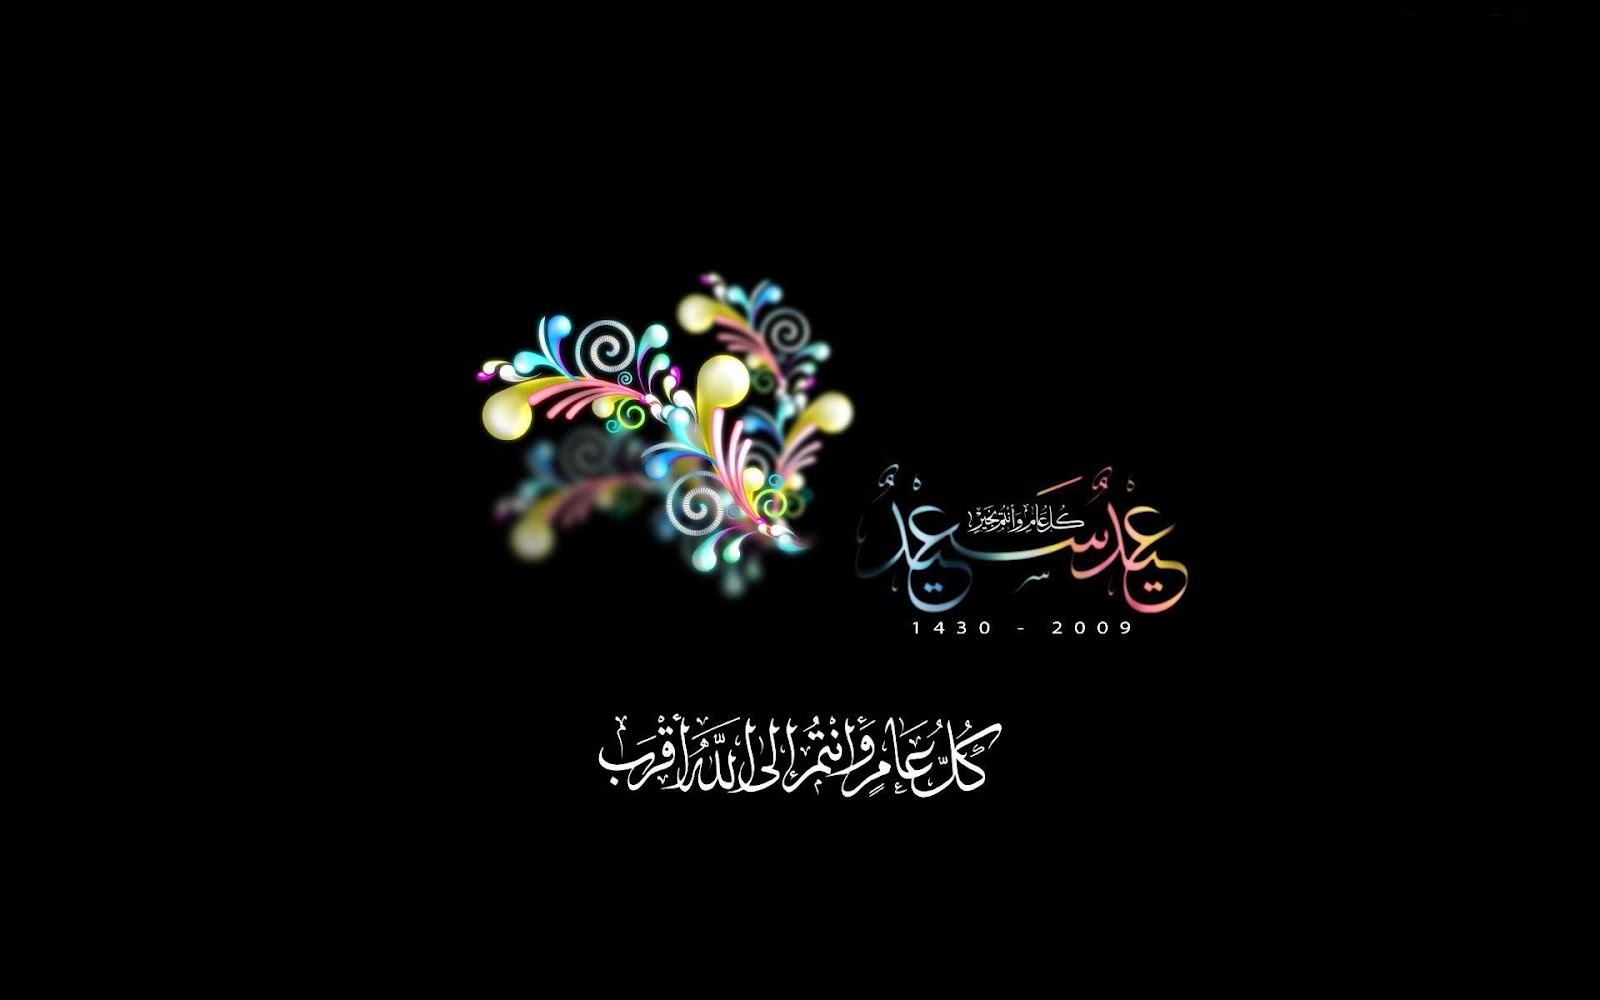 Eid Al Fitr Mubarak Greetings Cards in Arabic